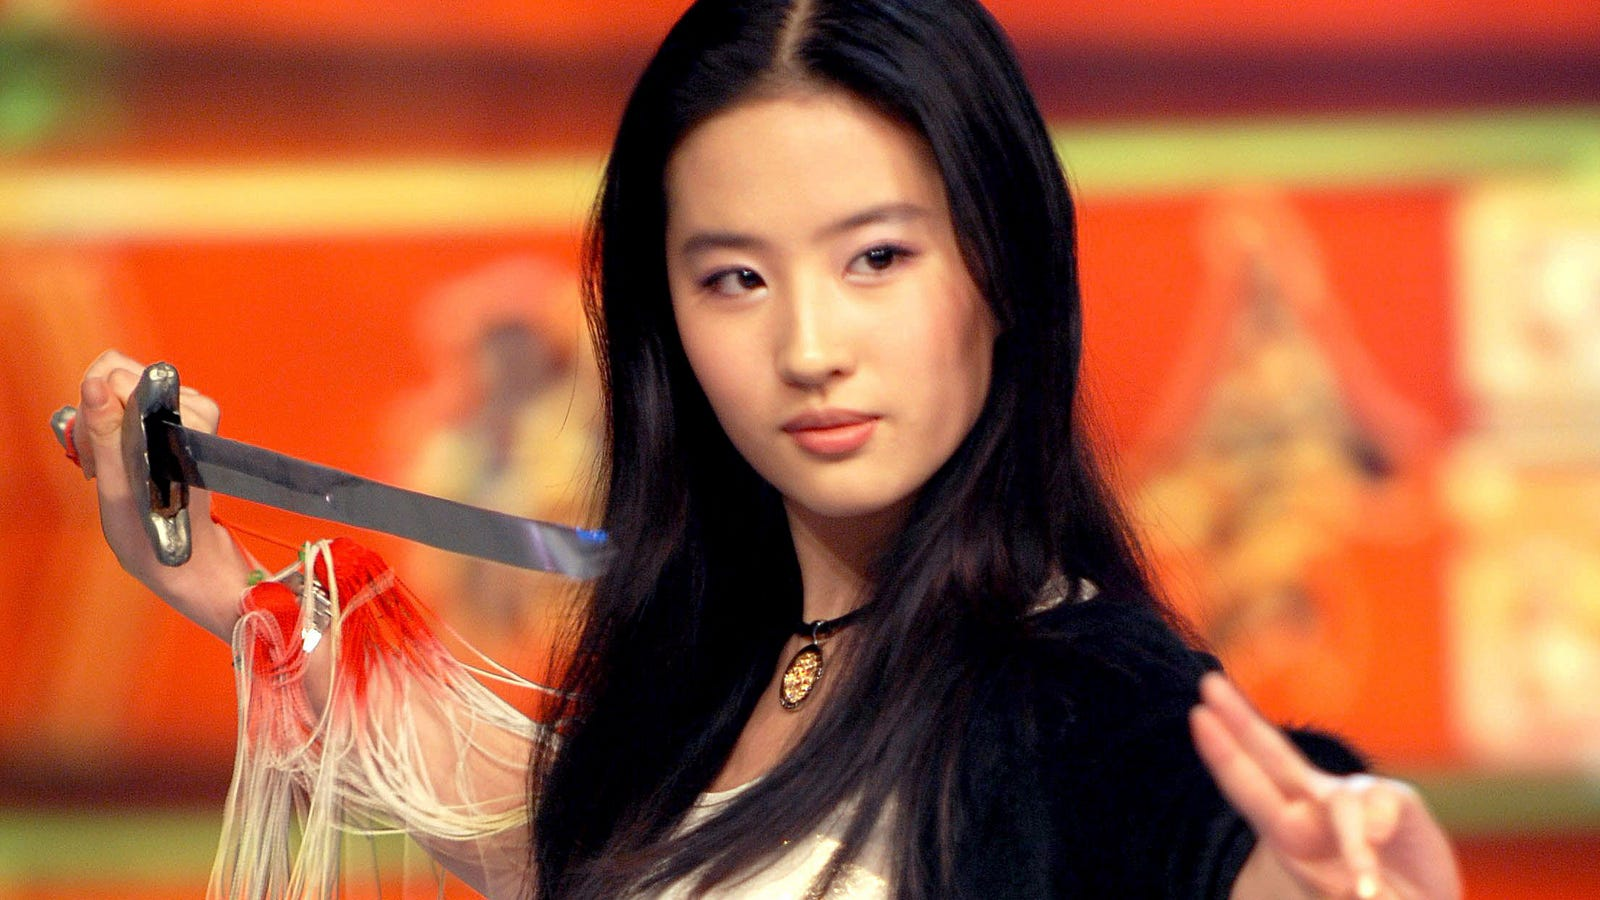 Liu Yi Fei >> Disney's Live-Action Mulan Finds Its Lead Actress